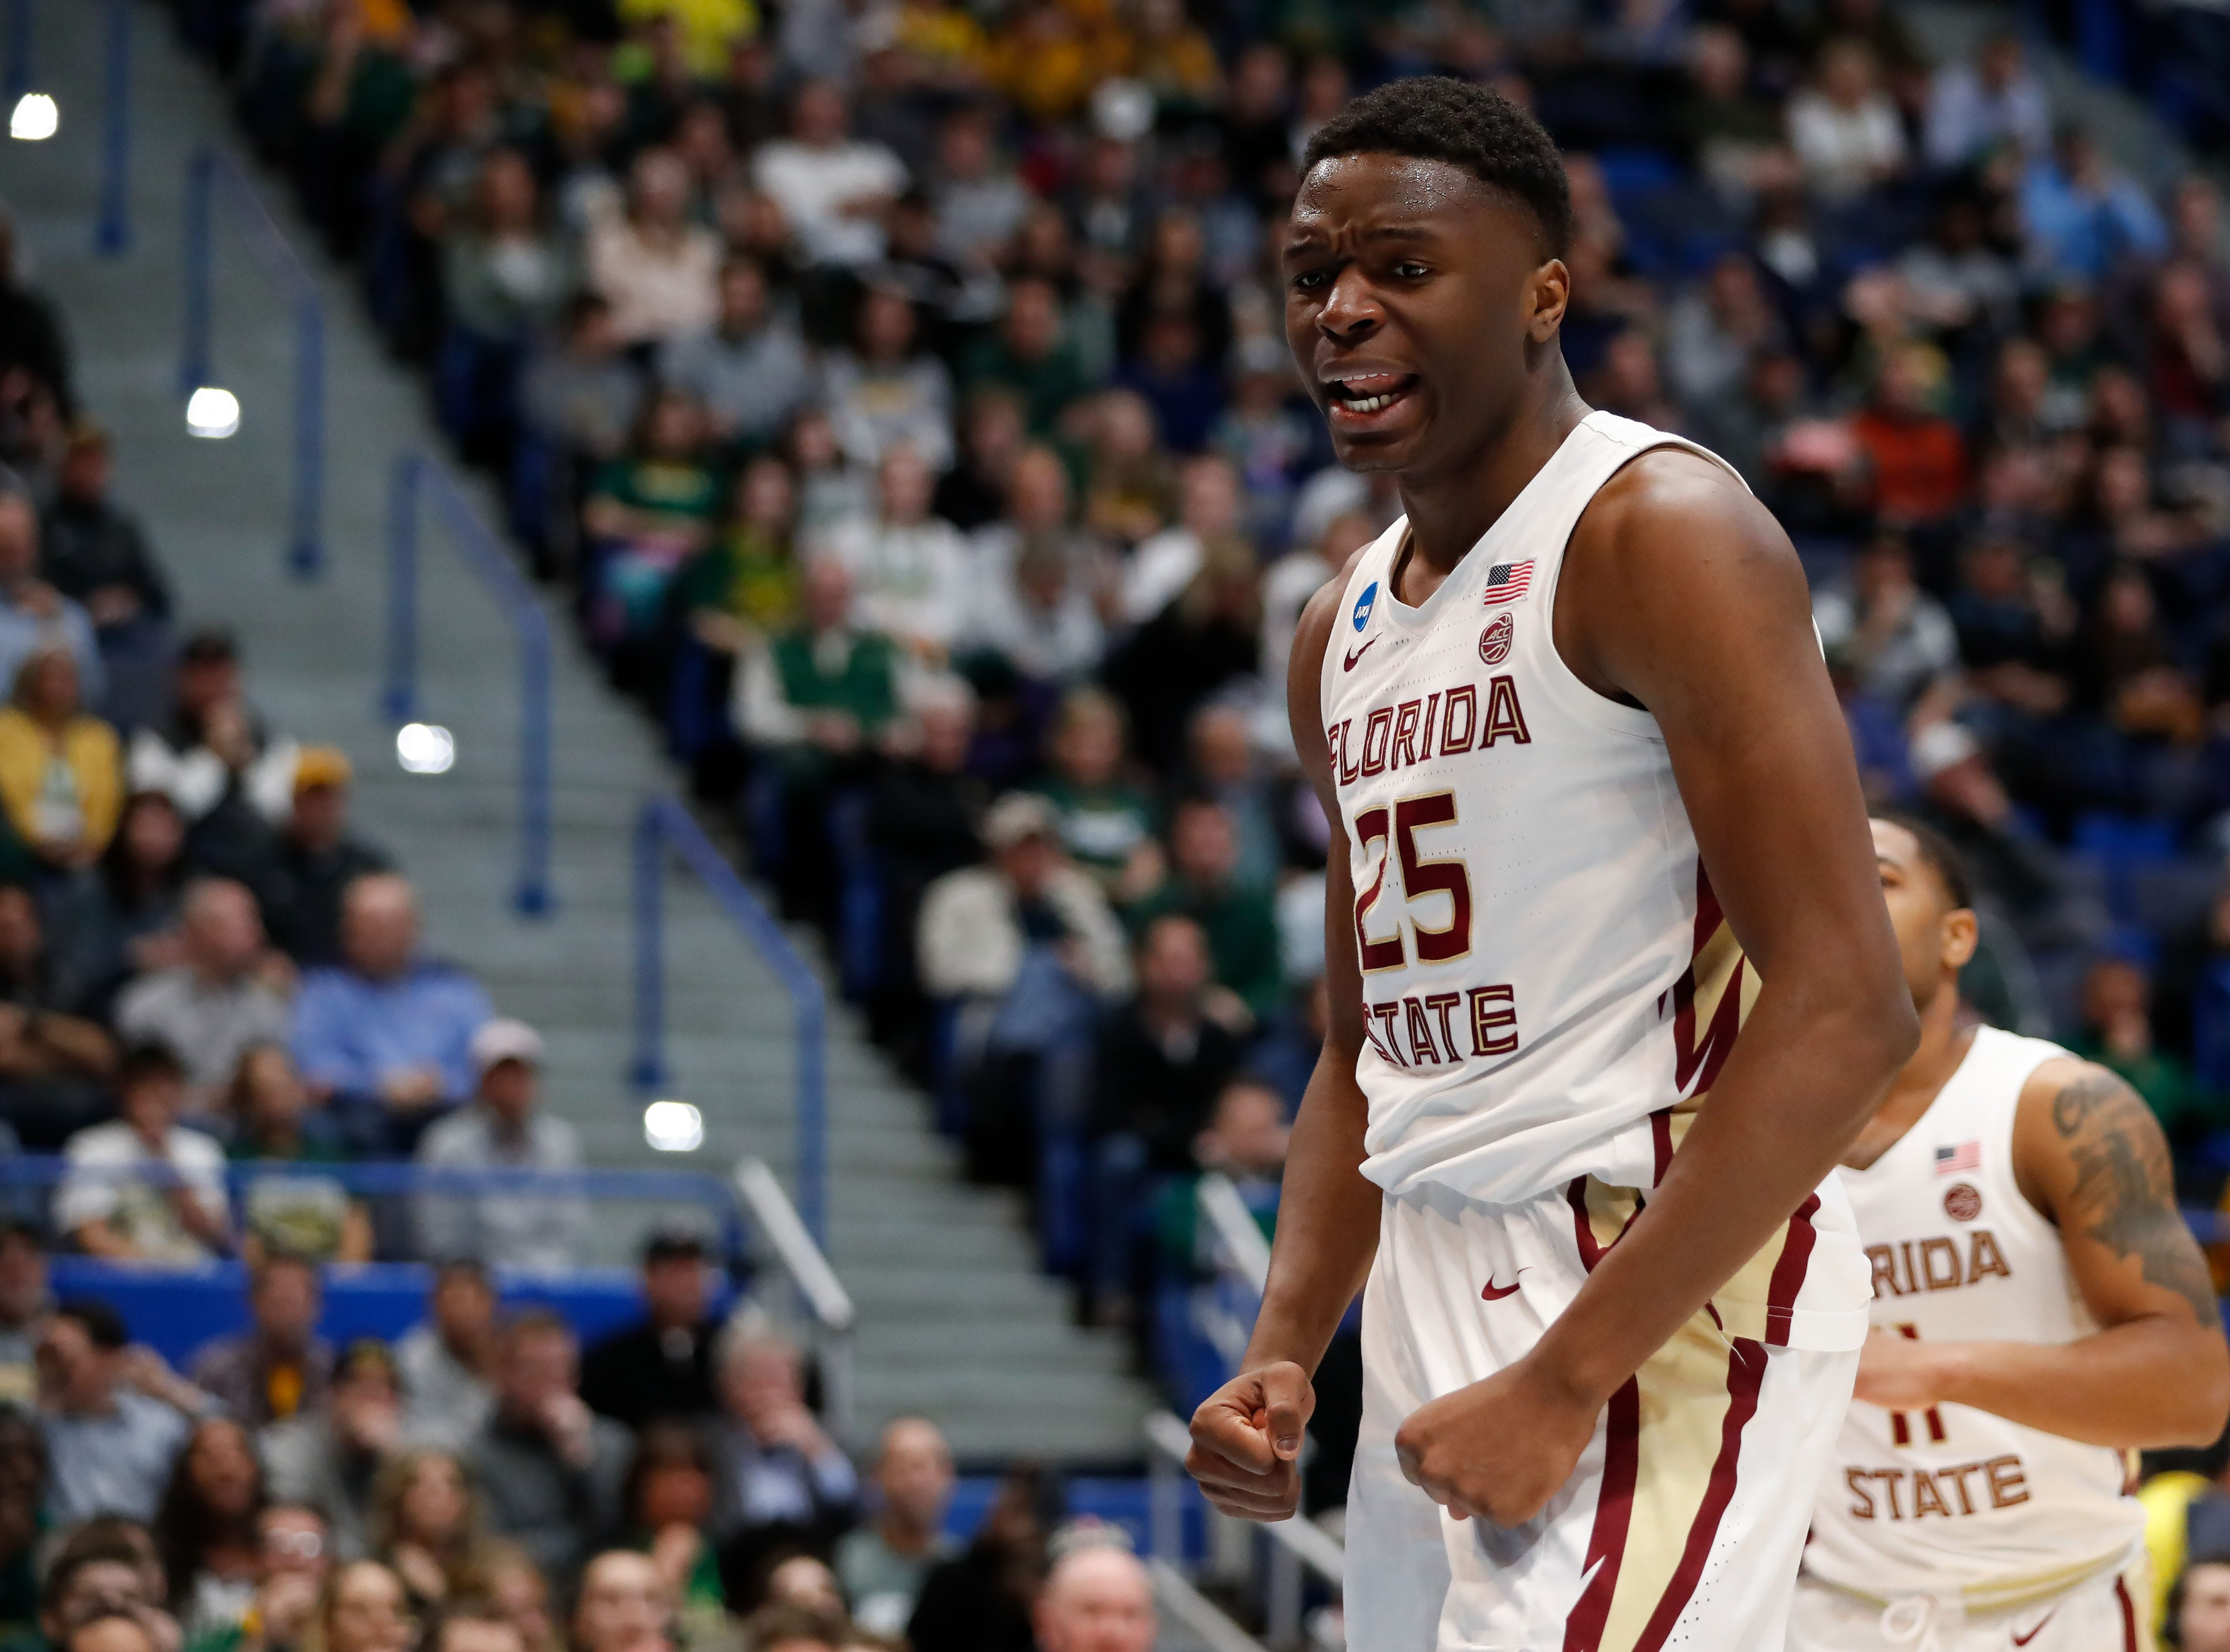 Mar 21, 2019; Hartford, CT, USA; Florida State Seminoles forward Mfiondu Kabengele (25) reacts after a score against the Vermont Catamounts during the first half of game in the first round of the 2019 NCAA Tournament at XL Center. Mandatory Credit: David Butler II-USA TODAY Sports